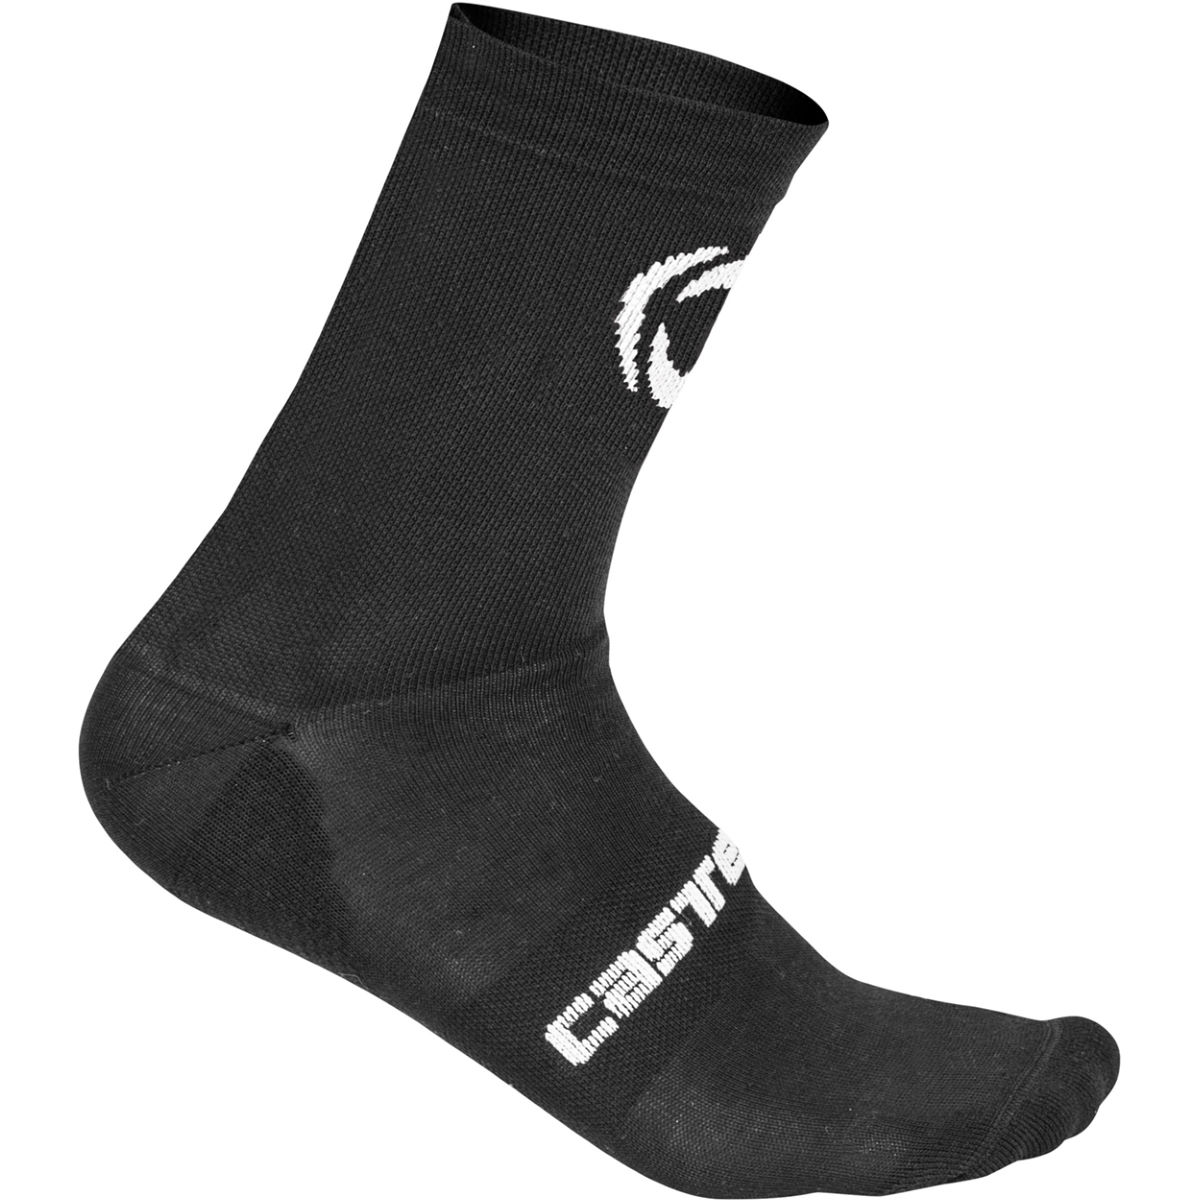 Castelli Team INEOS Cold Weather 15 Sock - Calcetines